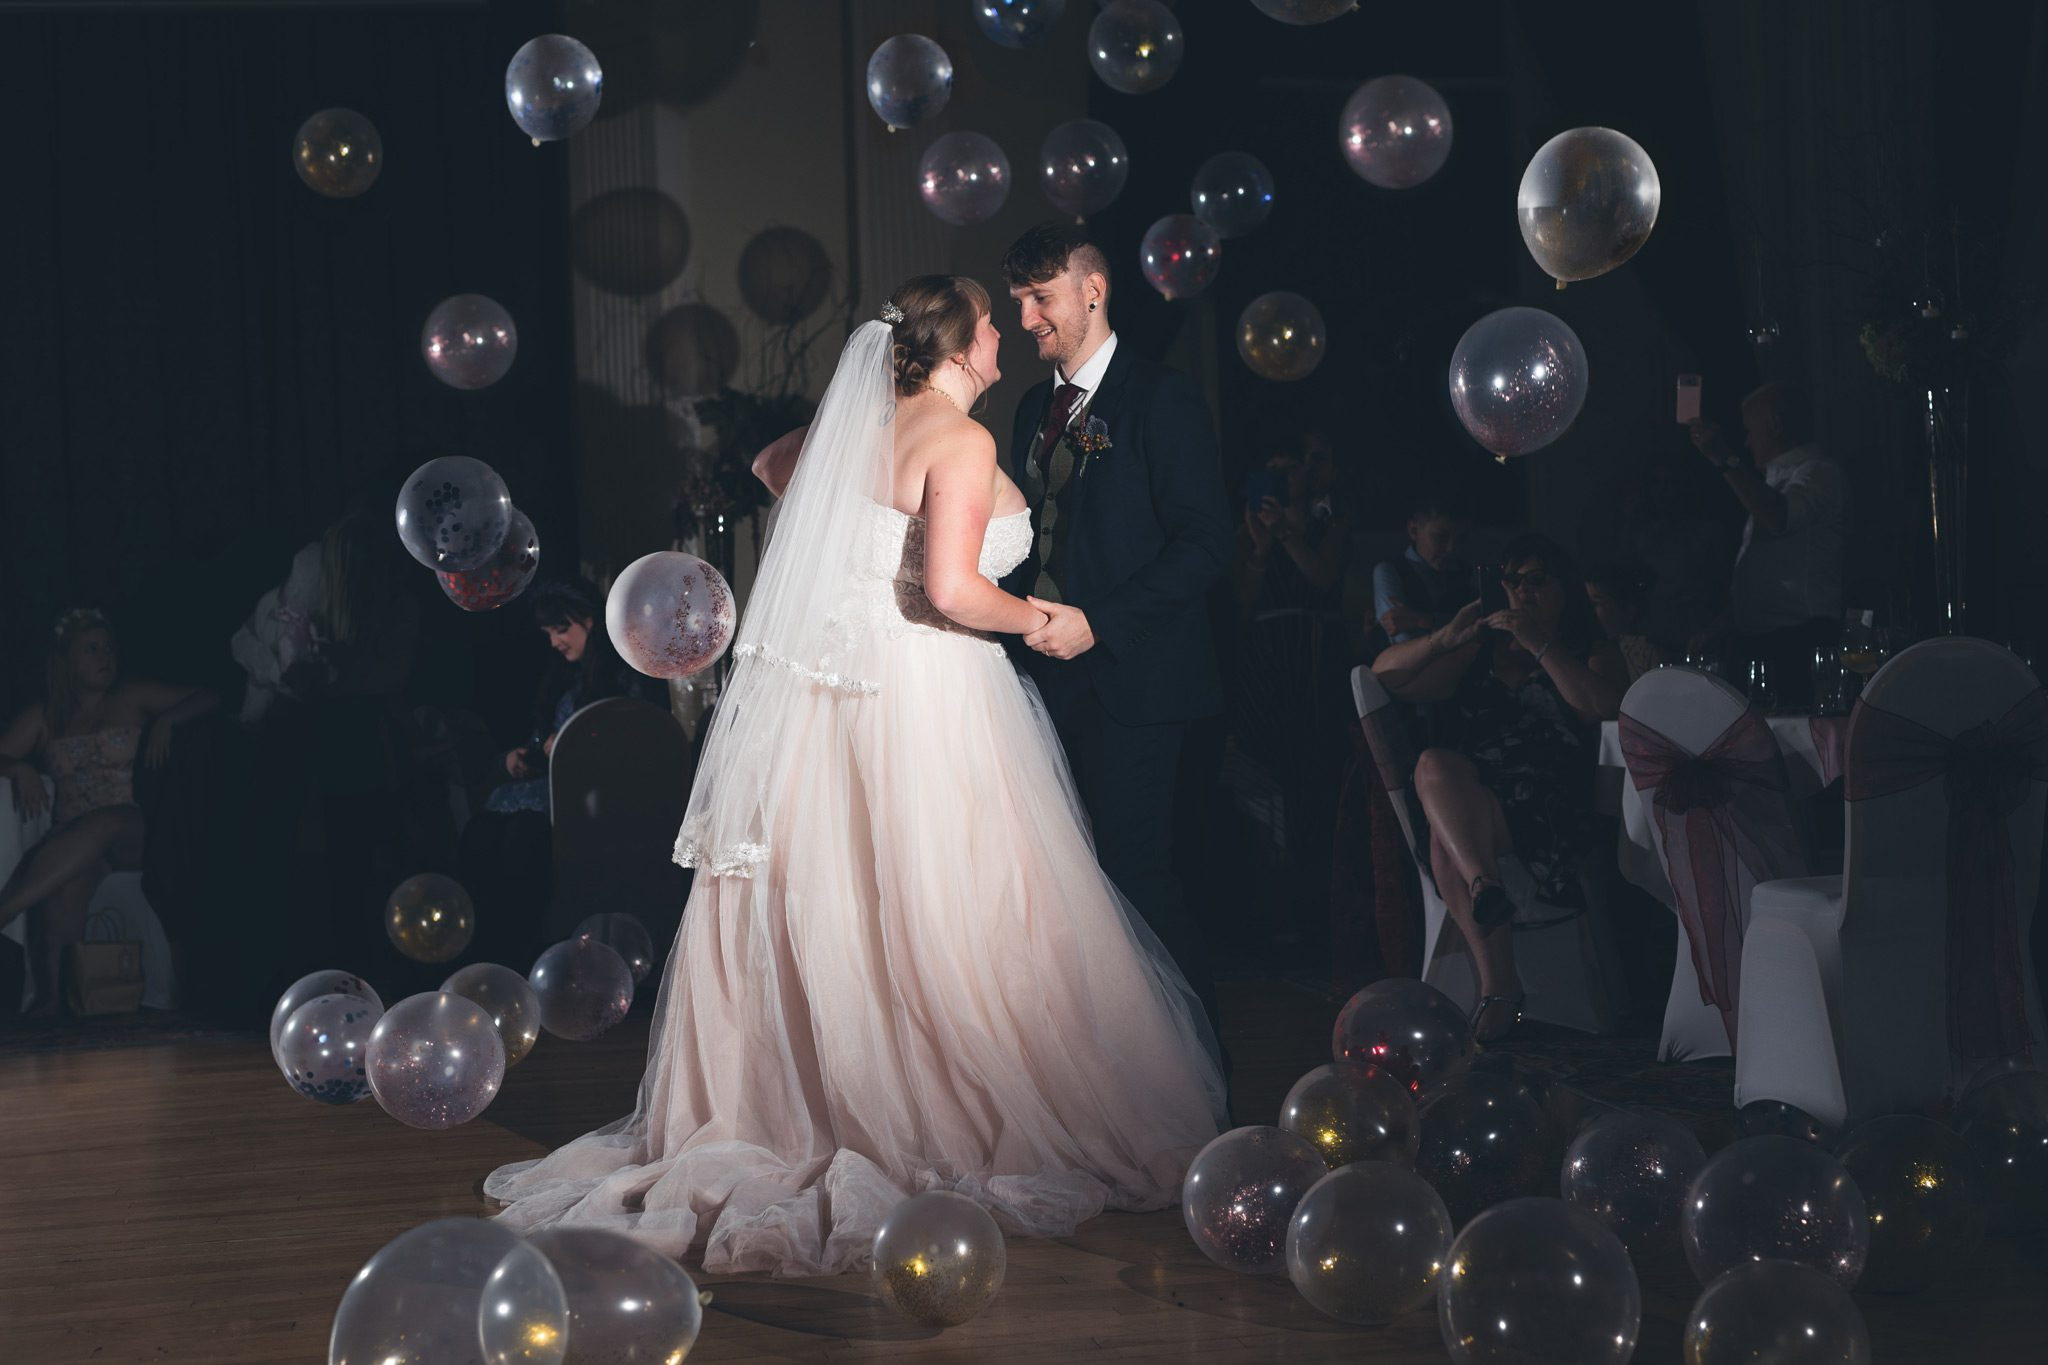 balloons falling during the bride and grooms first dance